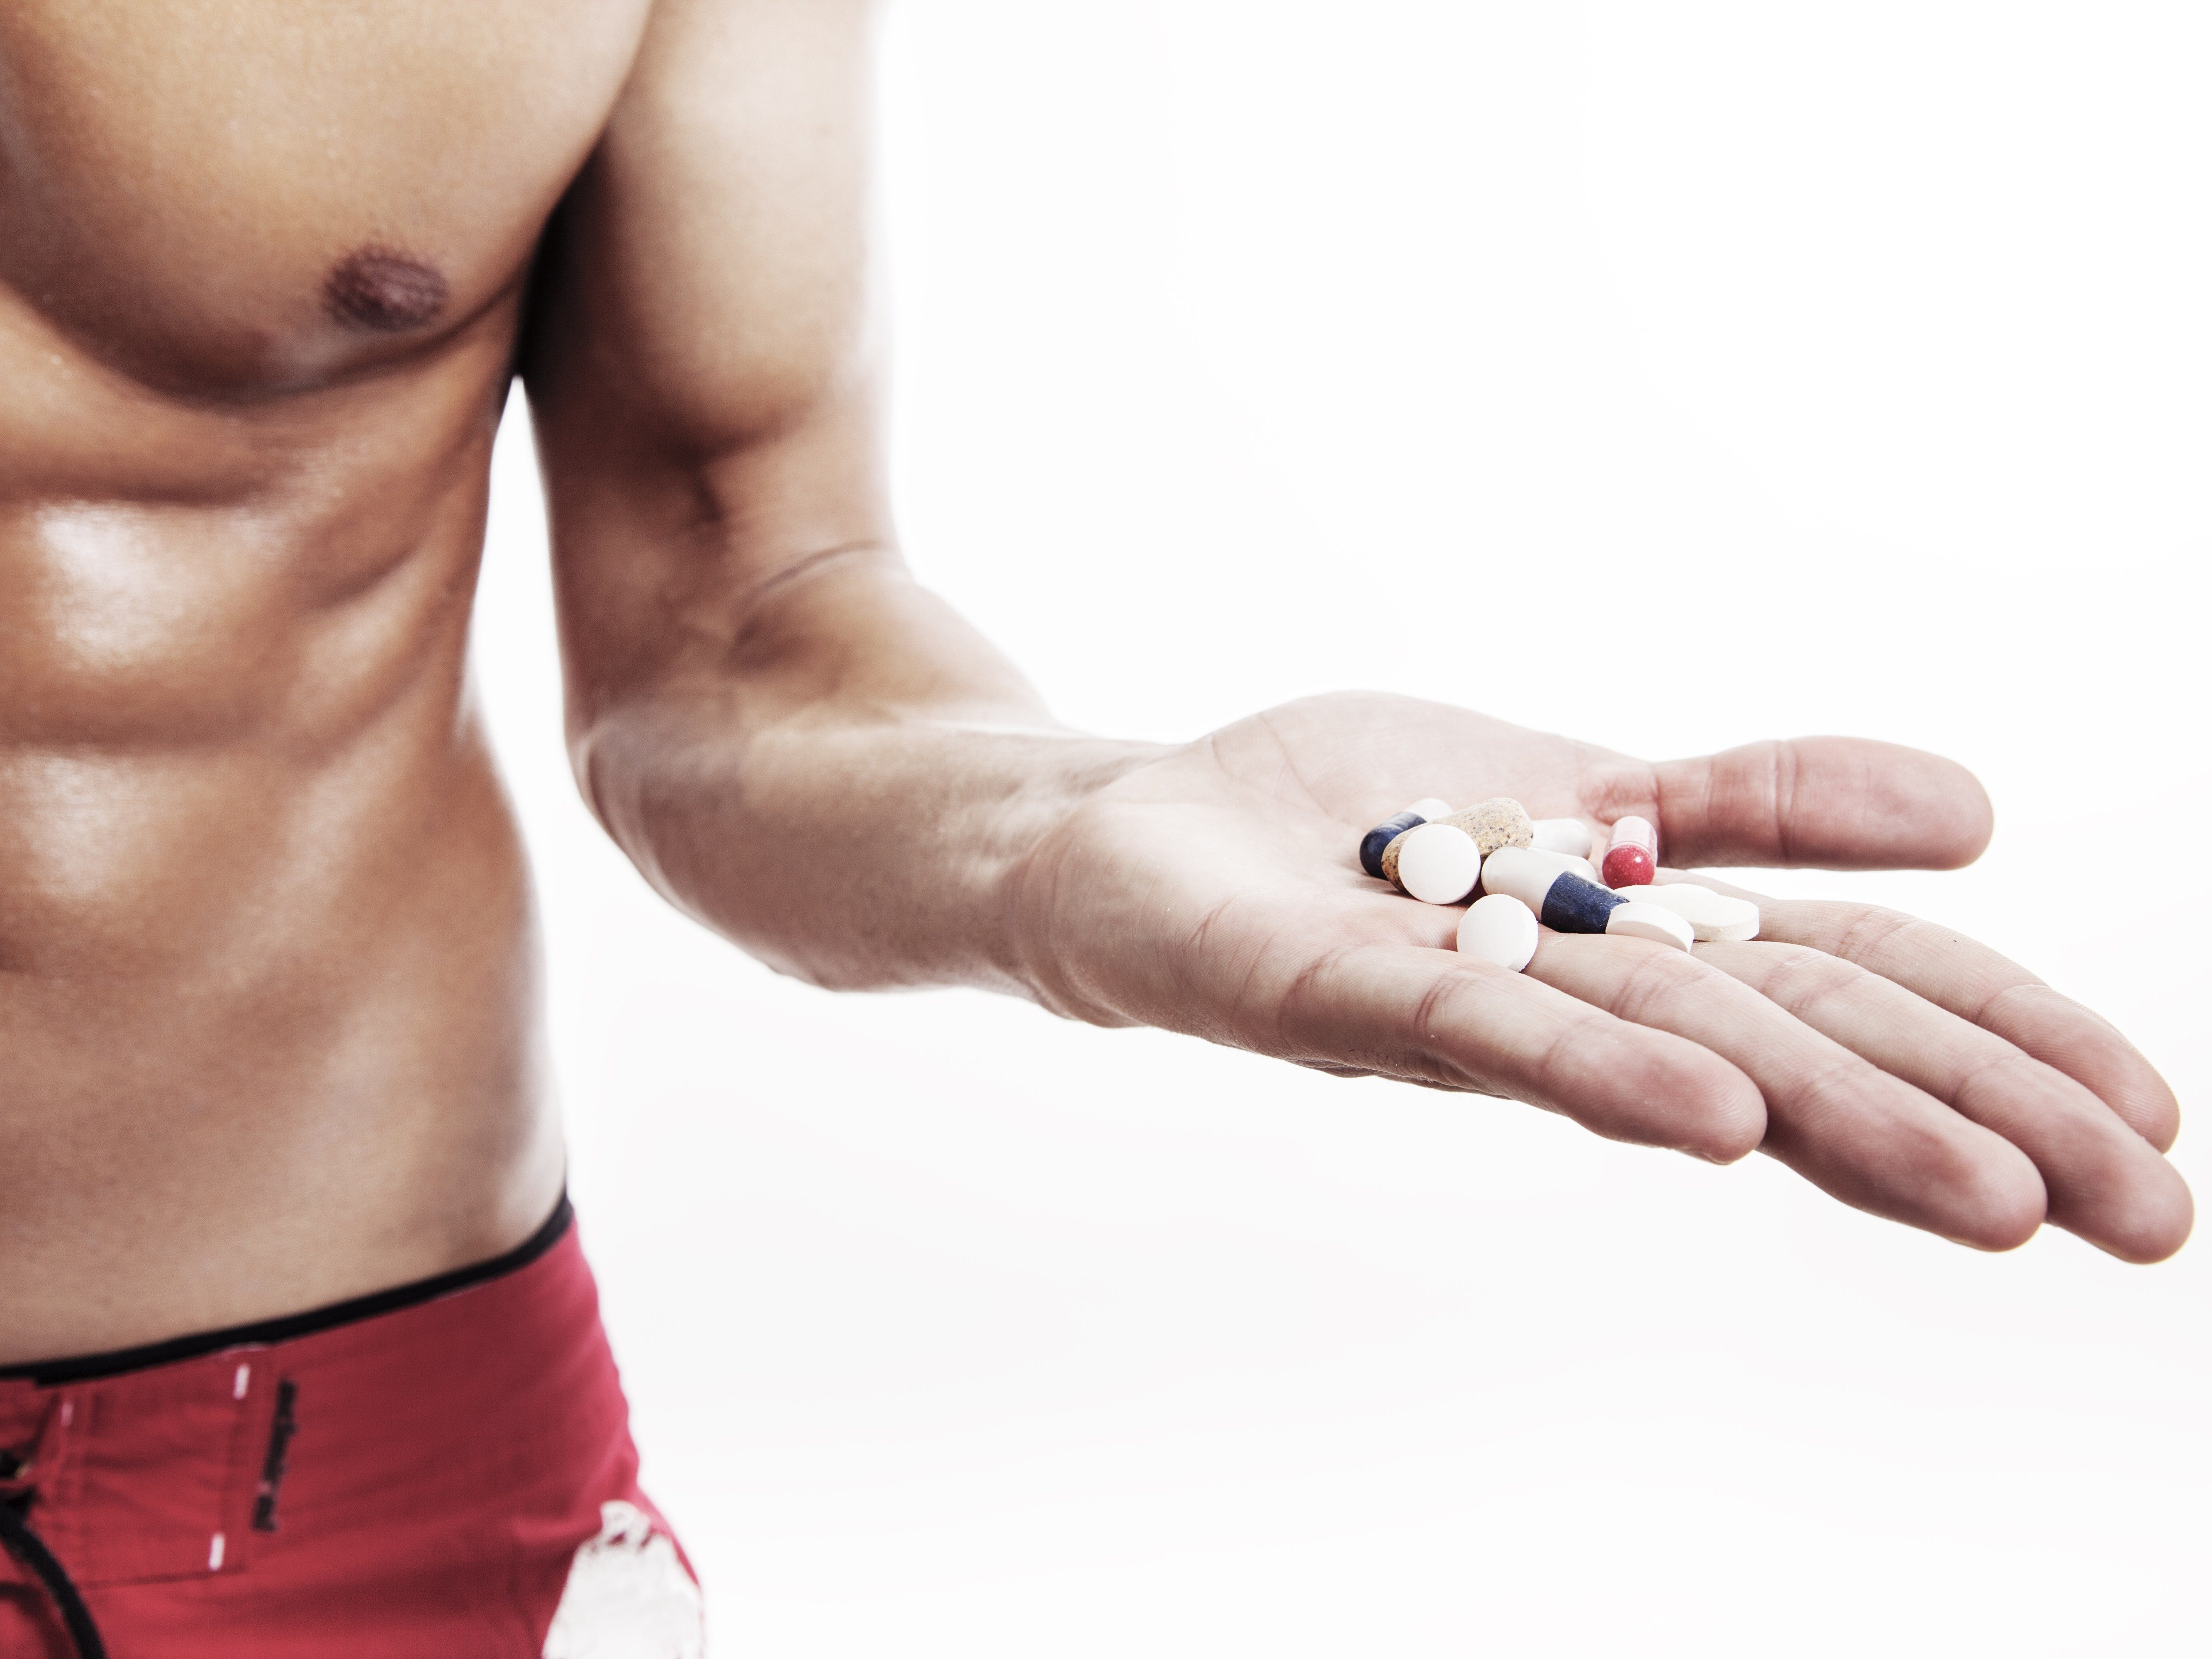 4. Supplements are not performance boosters.